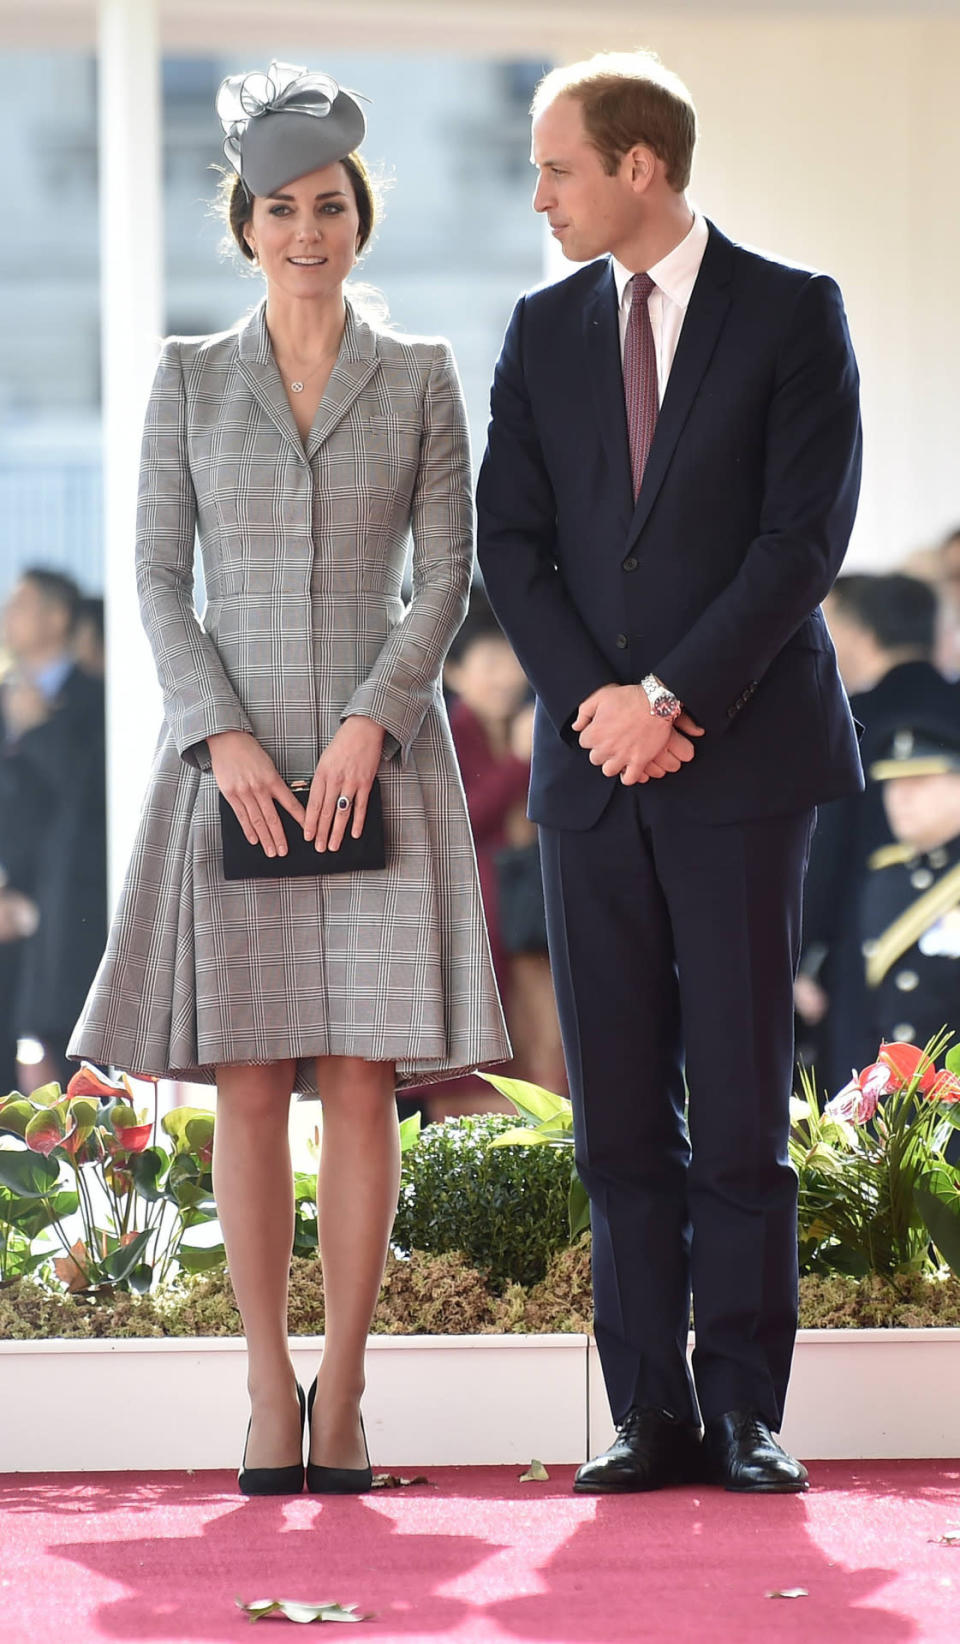 <p>Welcoming the President of Singapore, Kate chose a bespoke Alexander McQueen coat with a coordinating grey Jane Taylor hat. She carried a black suede Jenny Packham clutch and finished with Prada shoes.</p><p><i>[Photo: PA]</i></p>